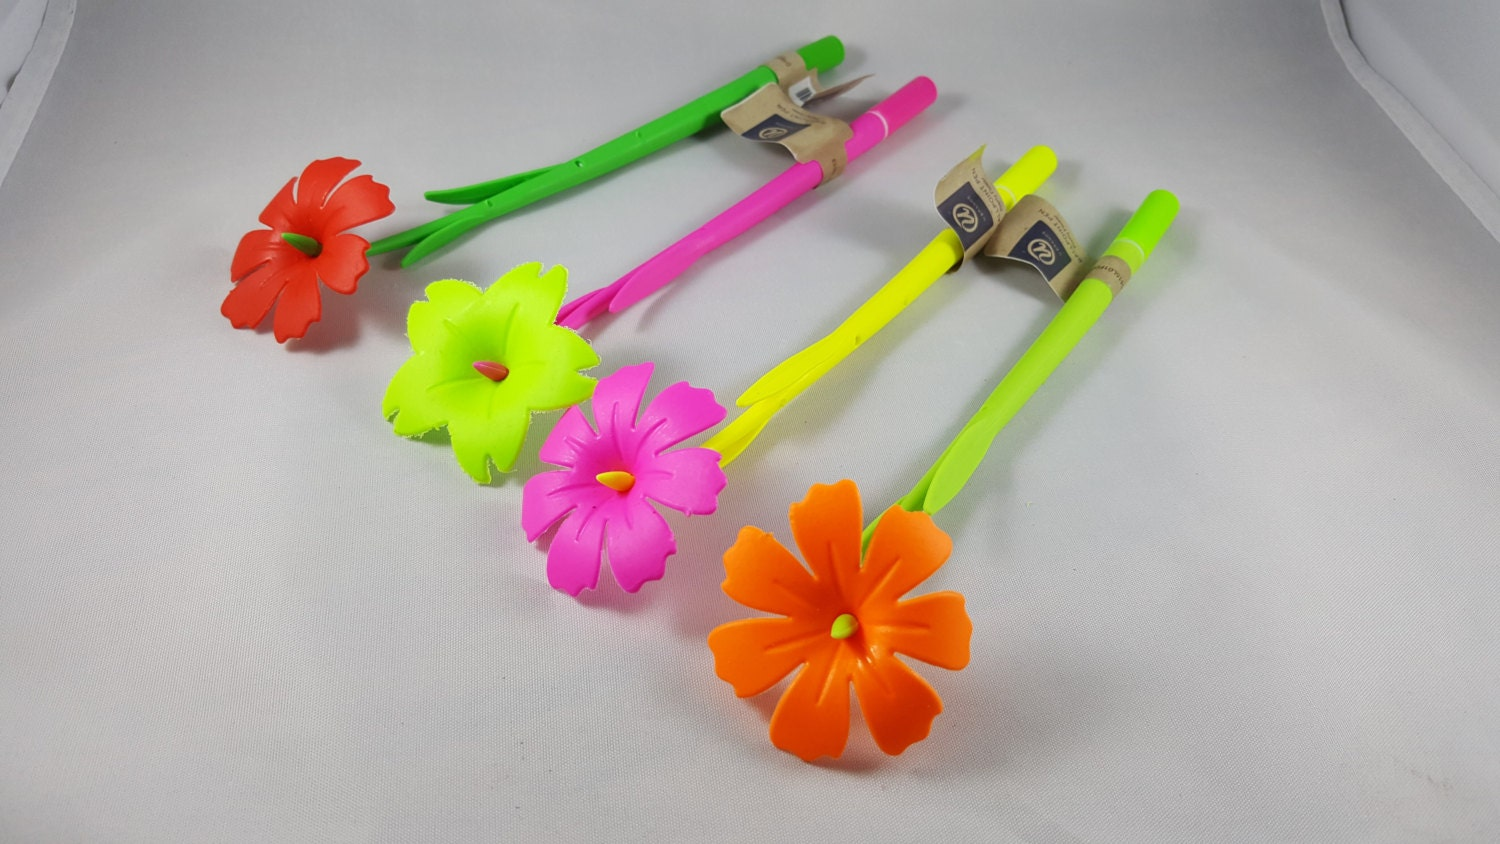 Flower Pens, Novelty Pen, Target, Office Supplies, School Supplies ...